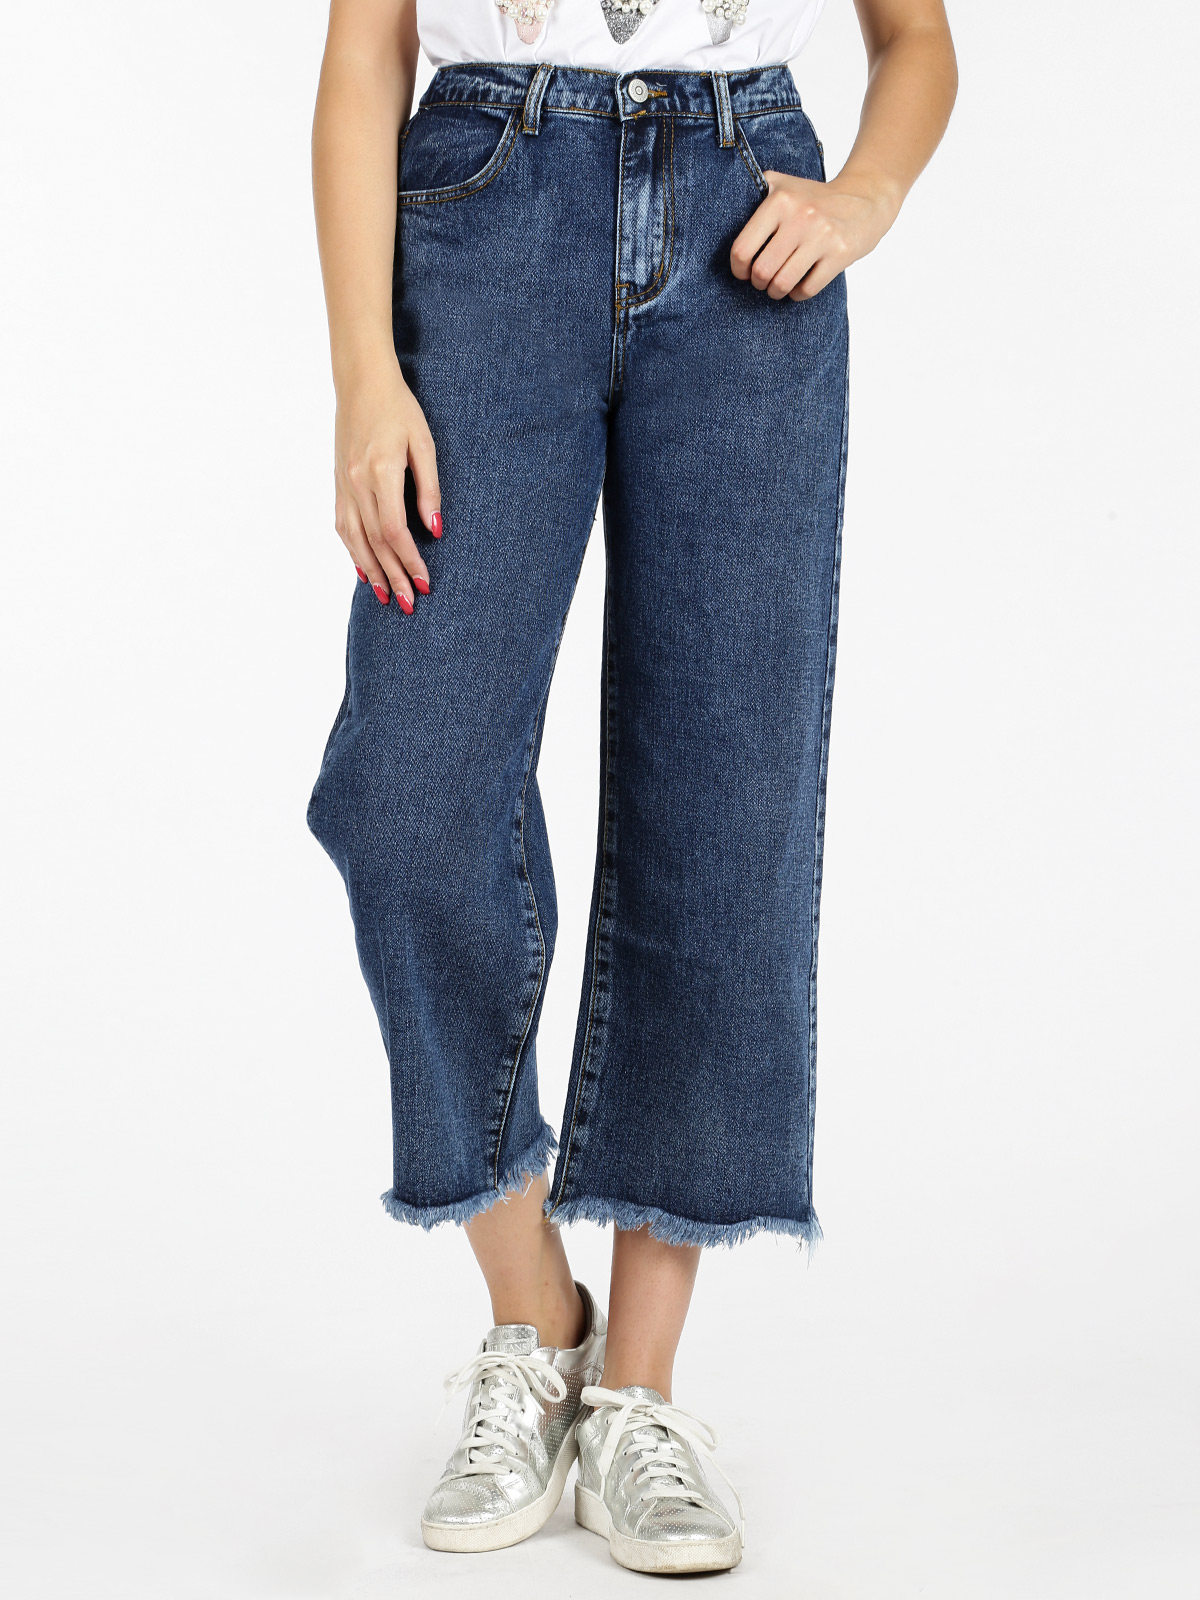 Loose Jeans Frayed Under-push Up